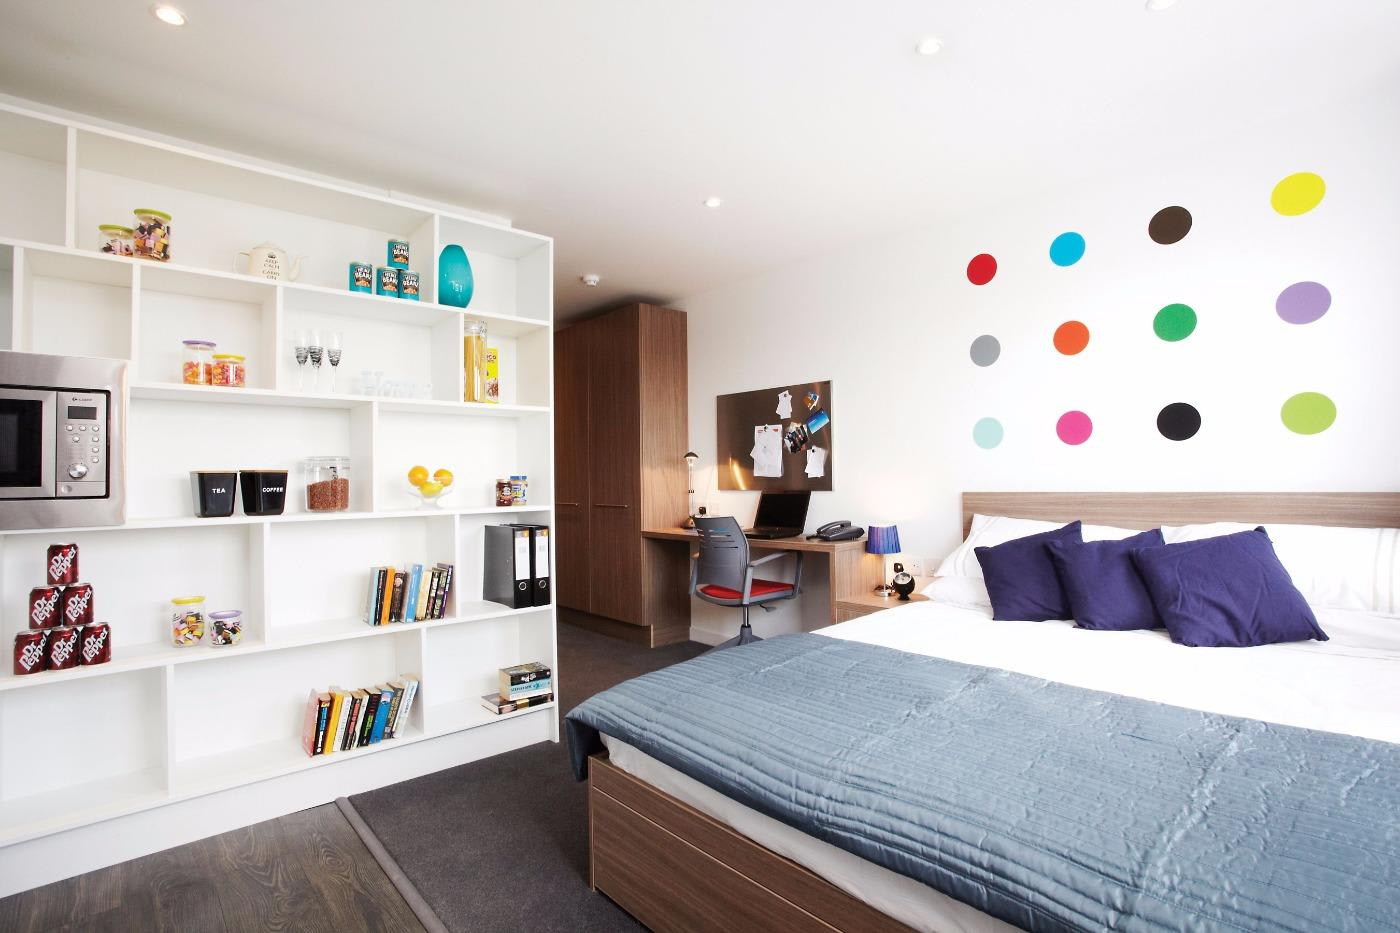 Bedroom Interior Of Student Accommodation At INTO GCU